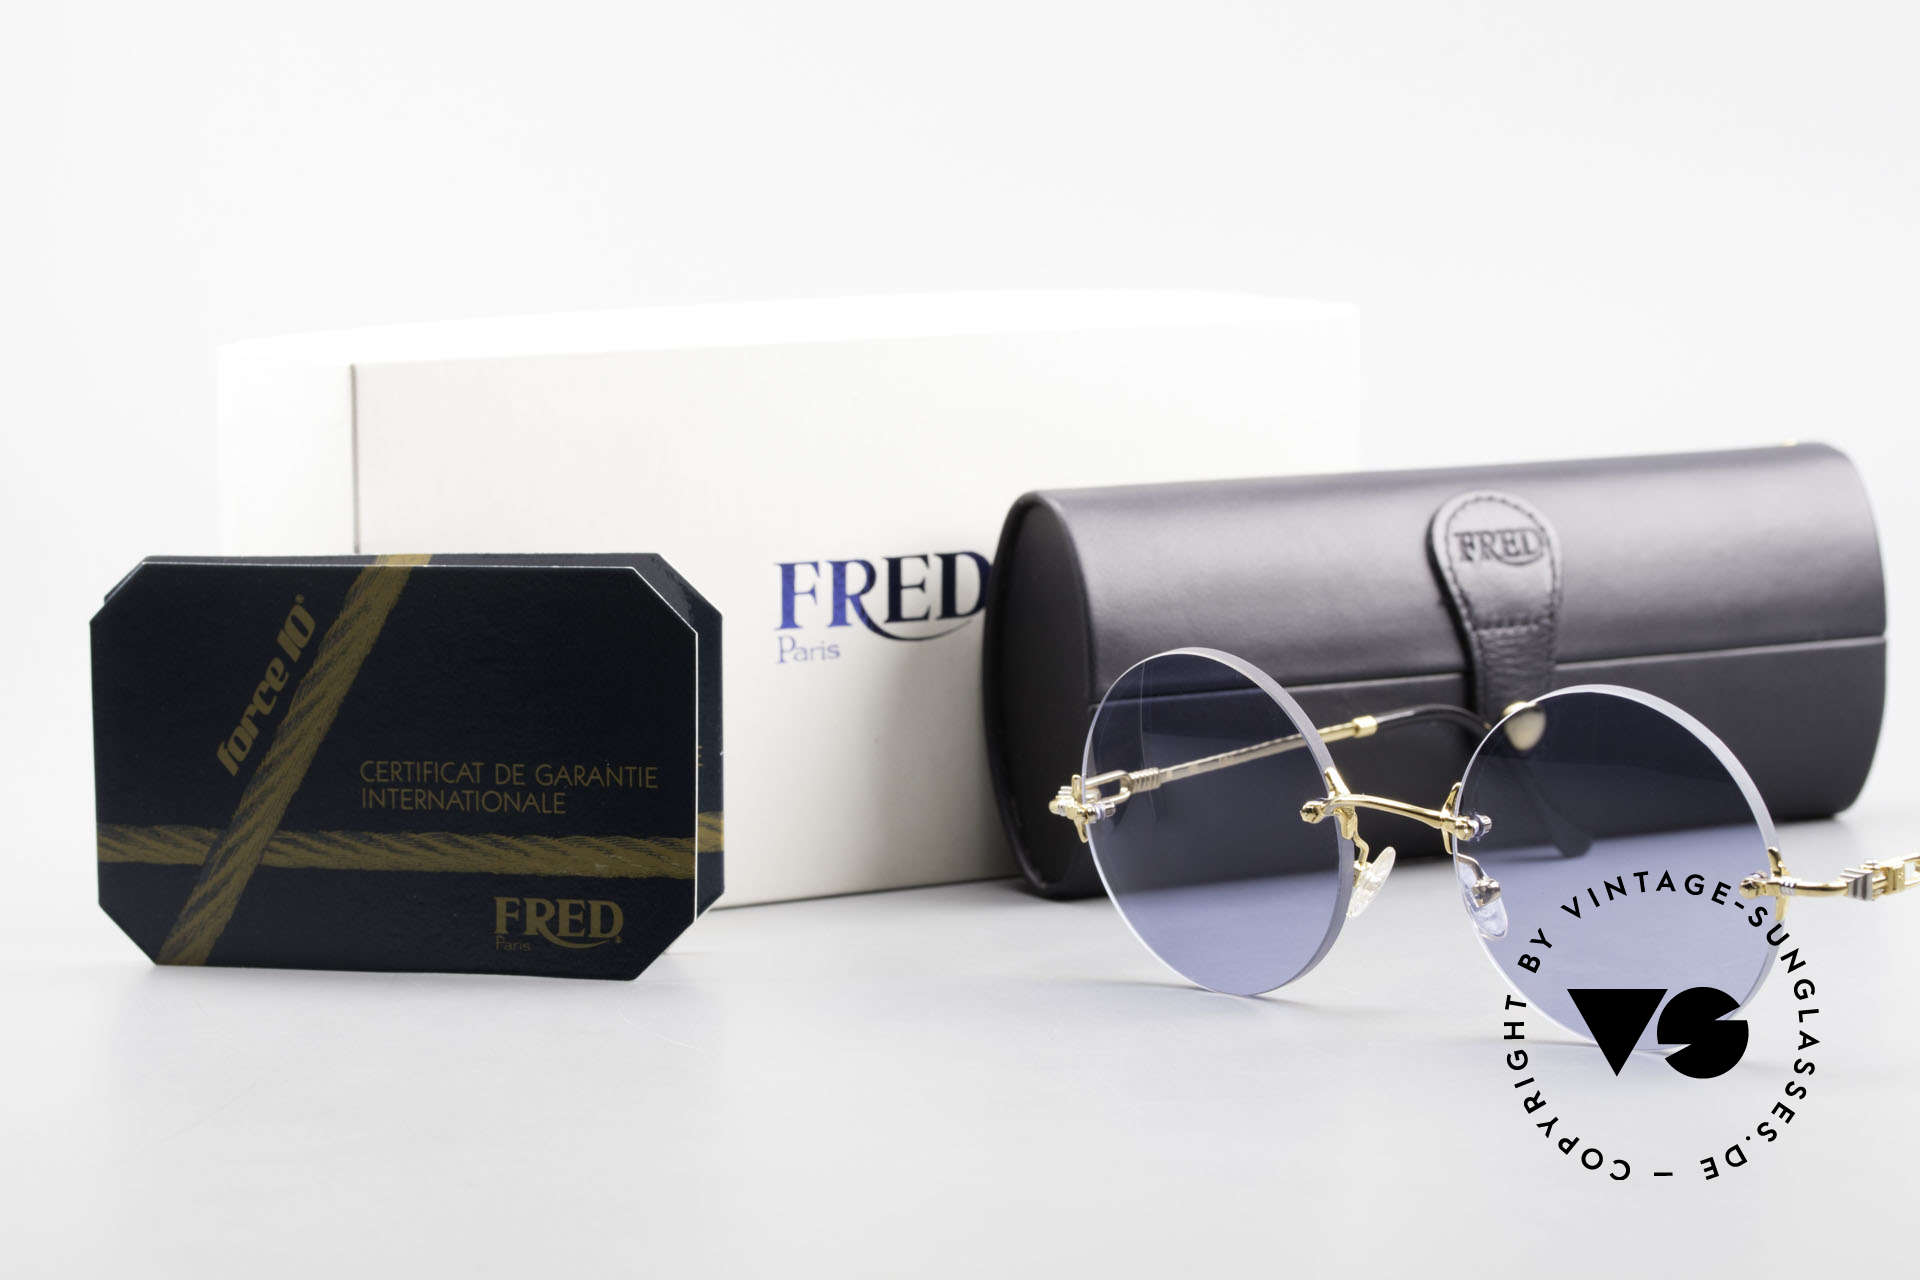 Fred Fidji Rimless Round Luxury Shades, Size: large, Made for Men